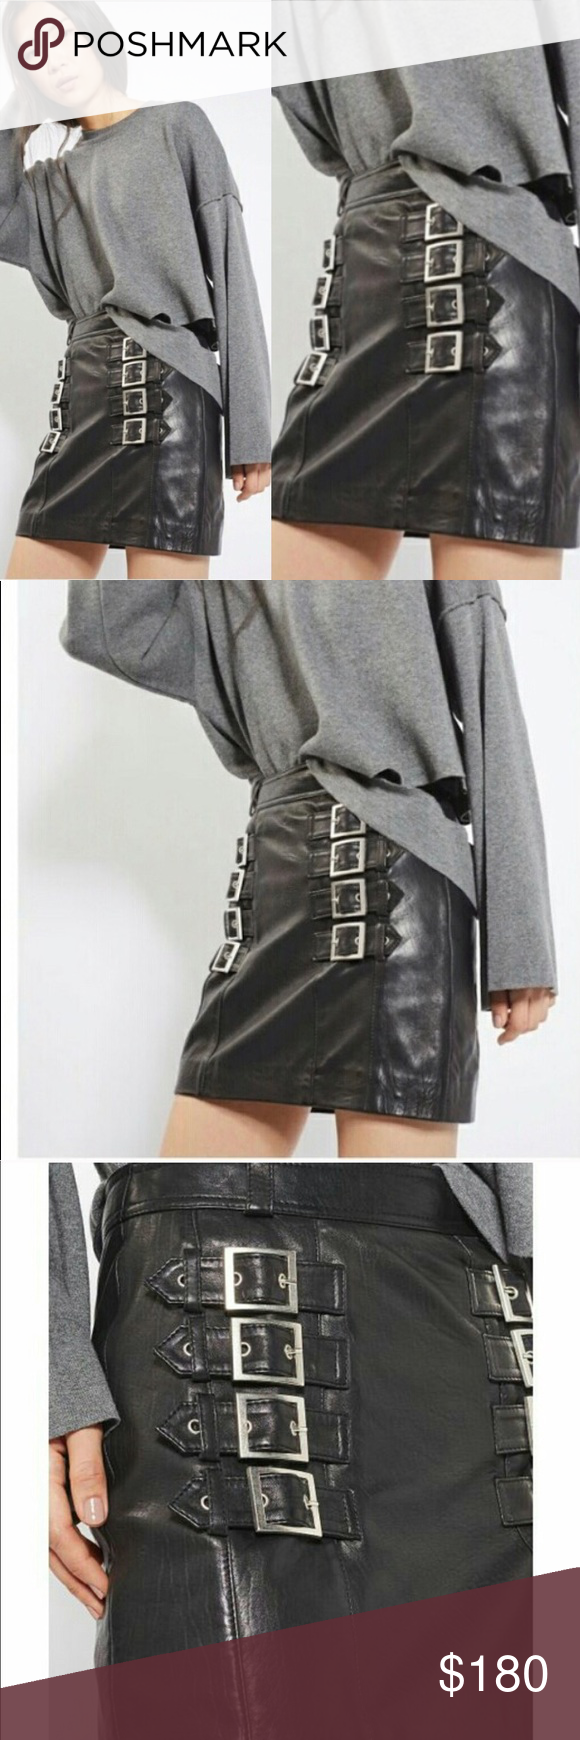 TopShop Leather Buckle Mini Skirt TopShop Leather Buckle Mini Skirt 100% Leather…